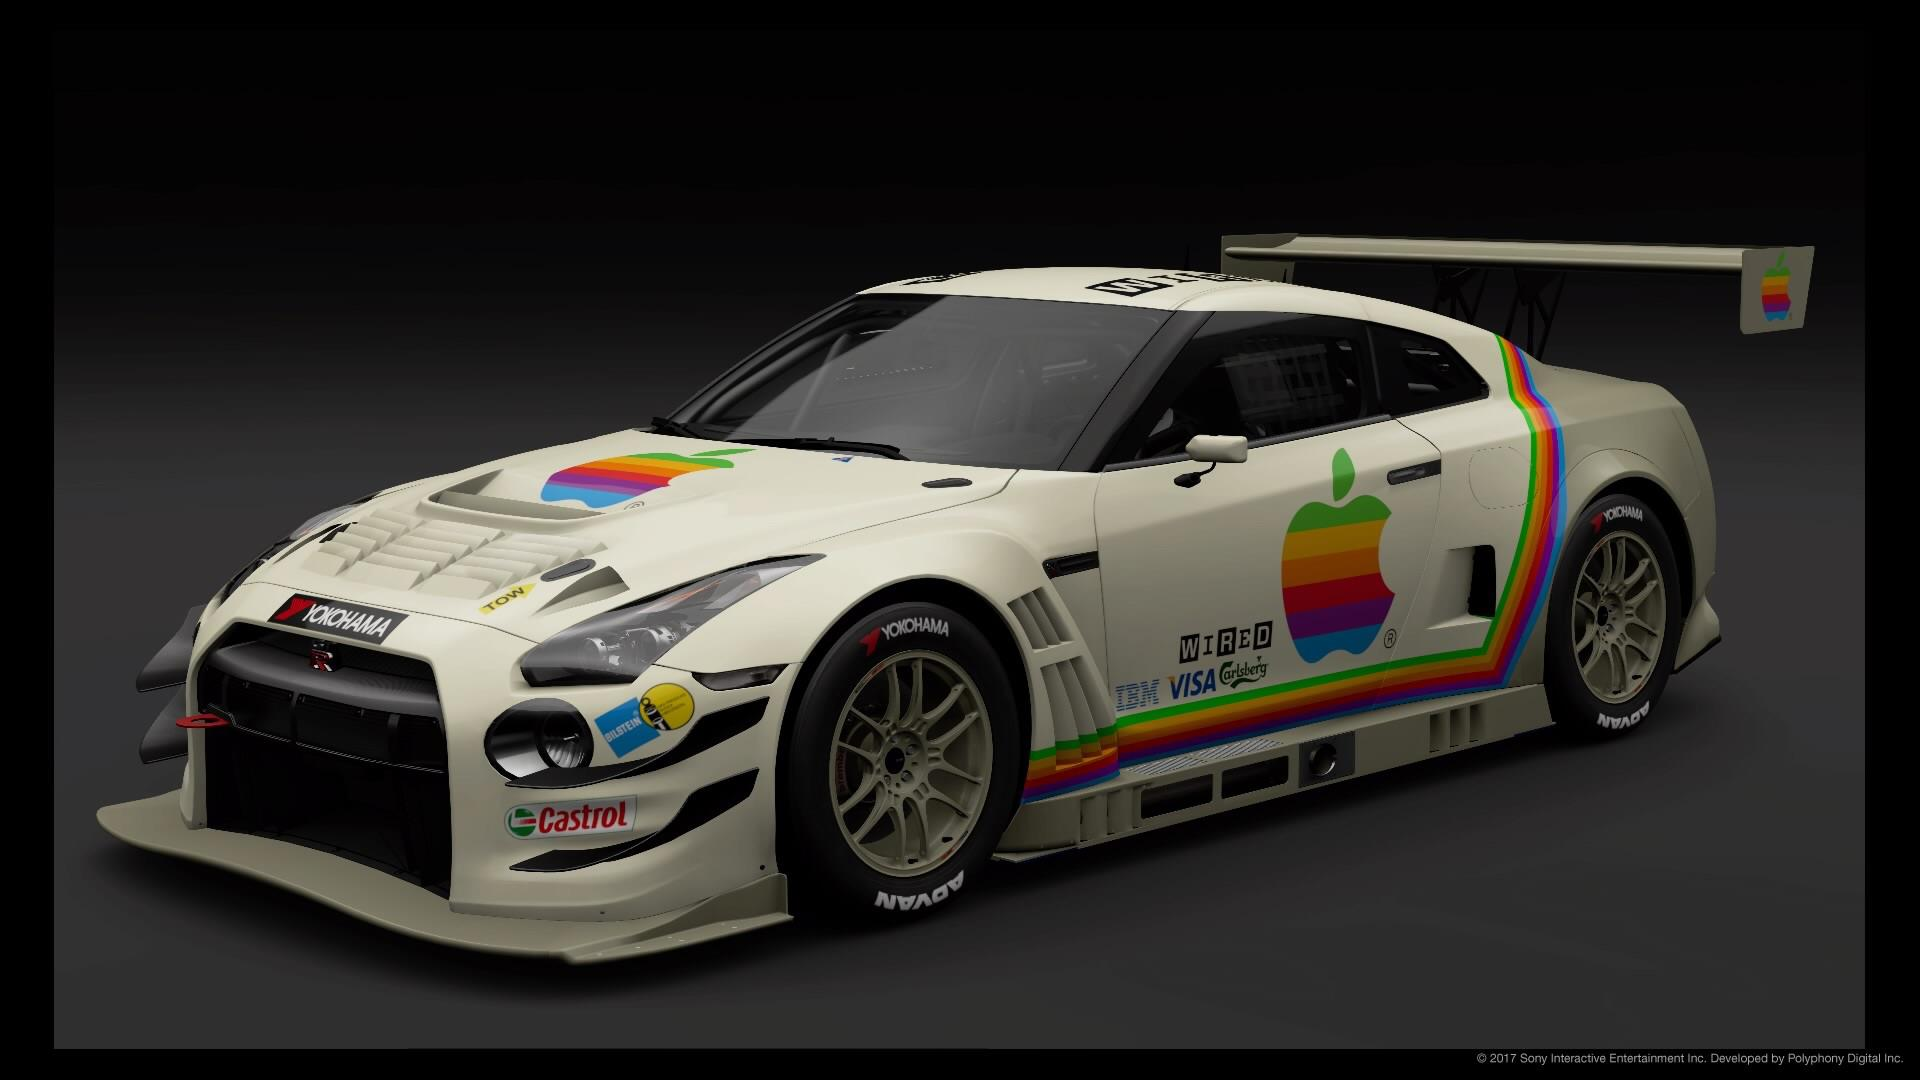 N24 Now Retro Apple Livery For Nissan Gt R Nismo Gt3 N24 Schulze